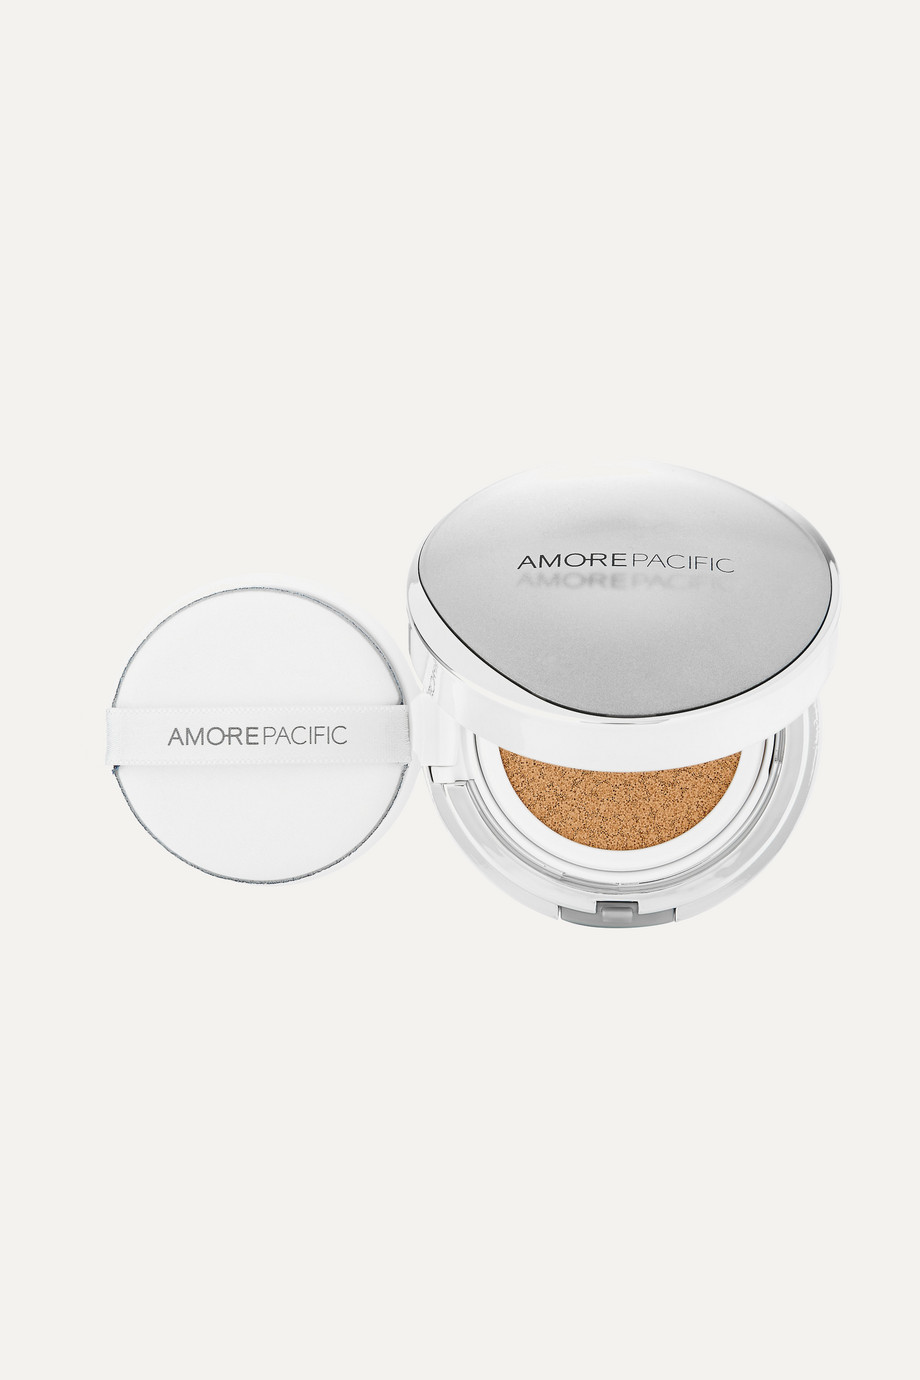 AMOREPACIFIC SPF50 Color Control Cushion Compact - #204 Tan Gold